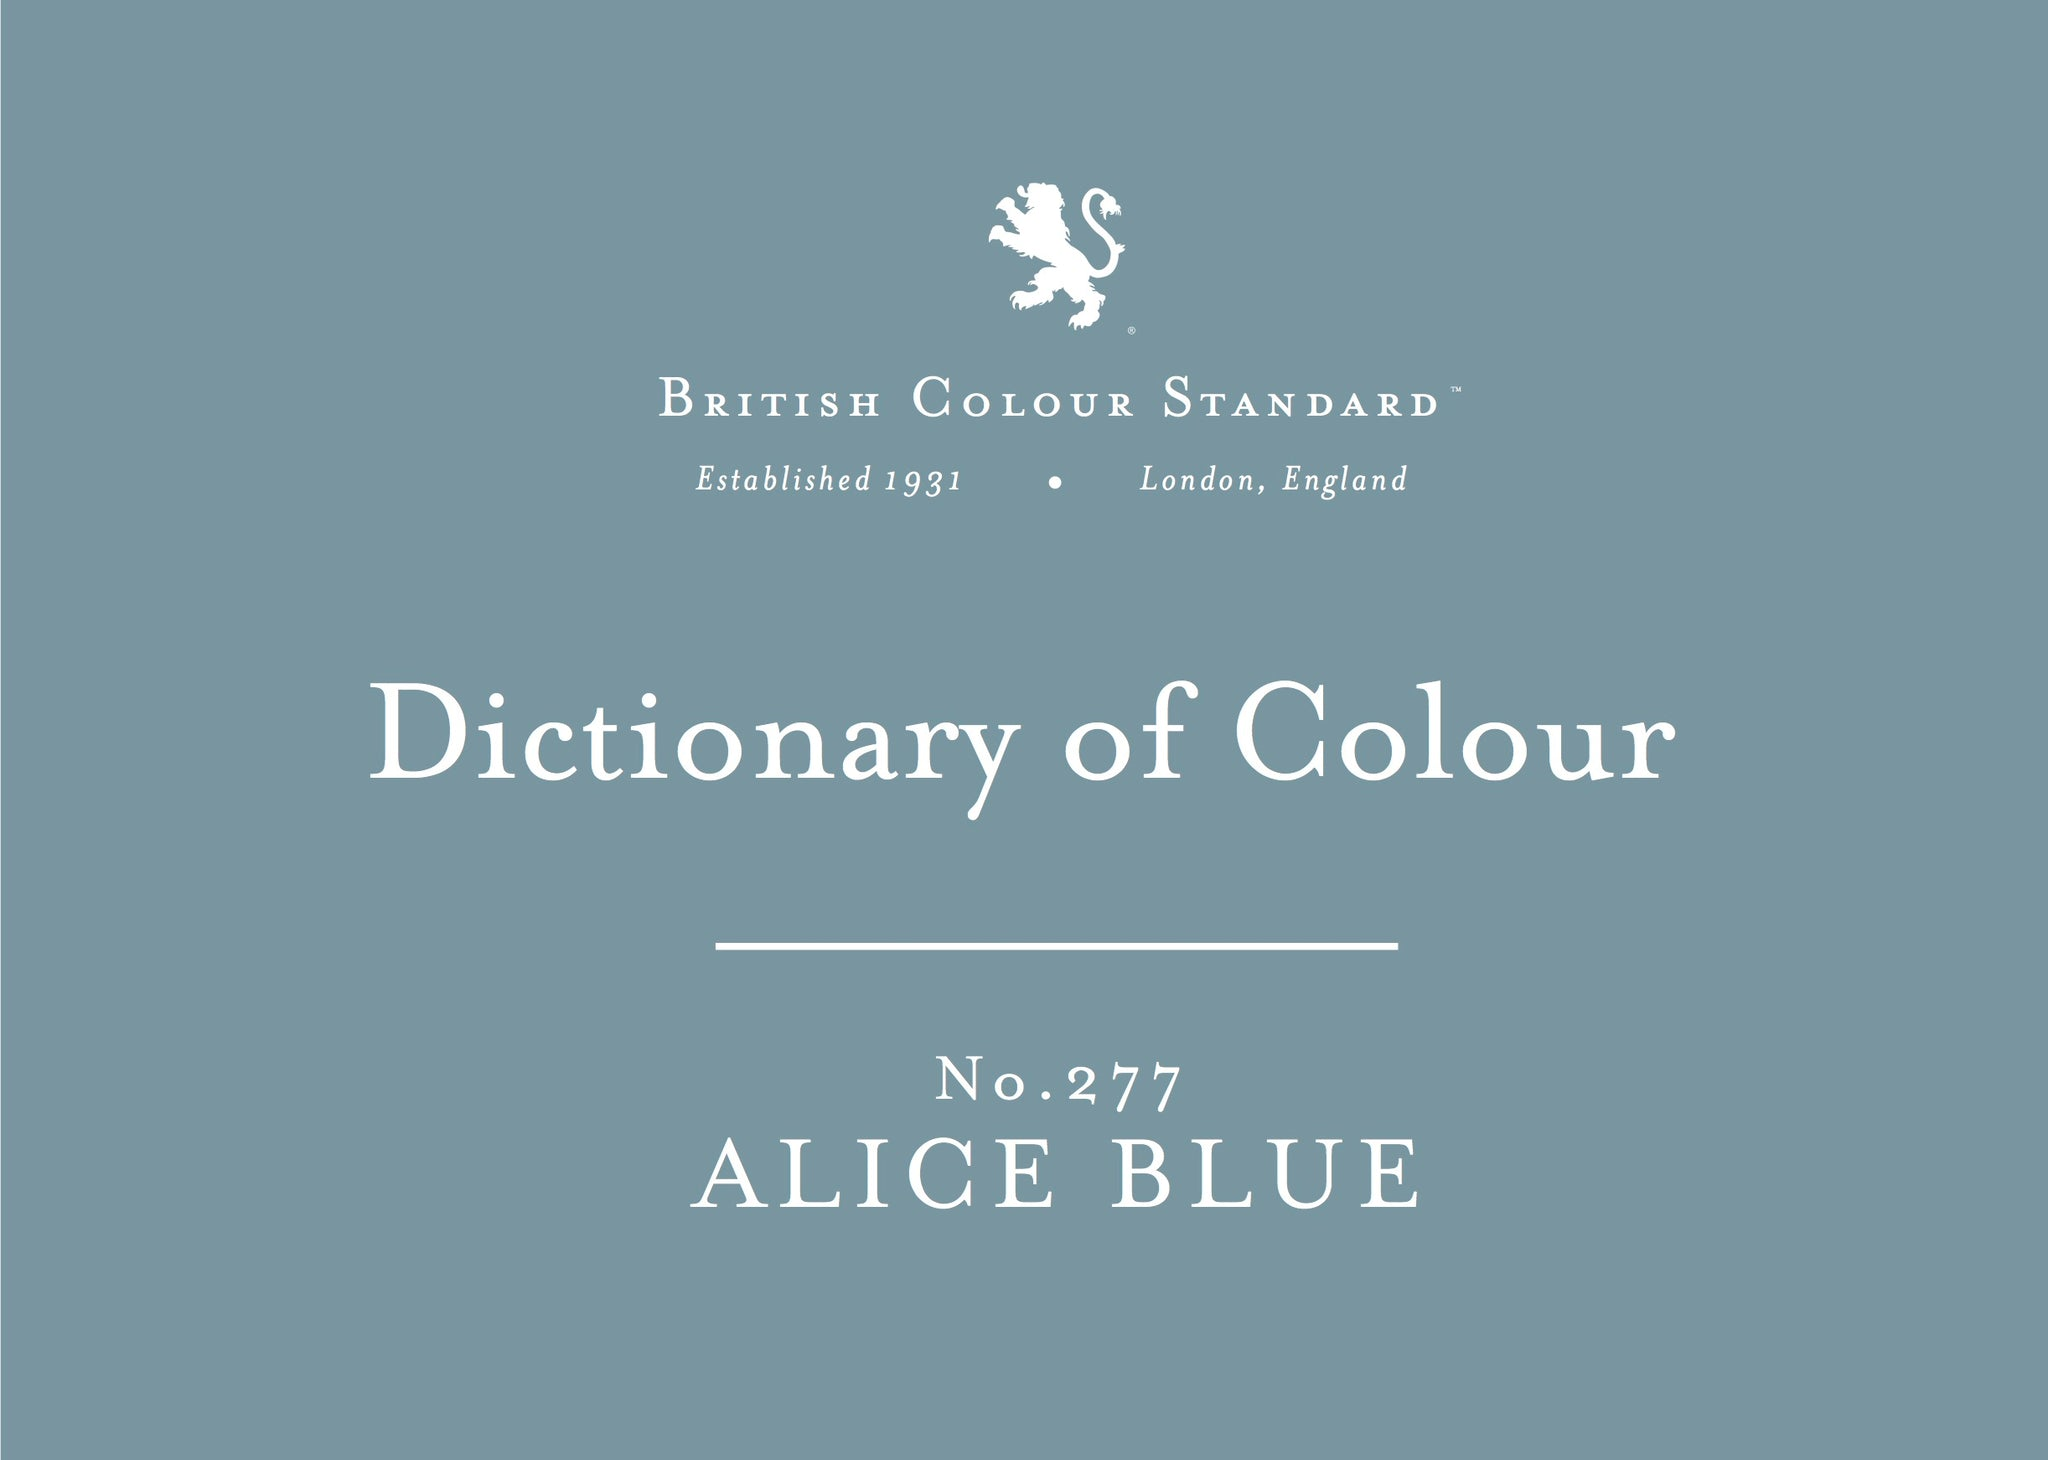 BRITISH COLOUR STANDARD - Alice Blue No. 277